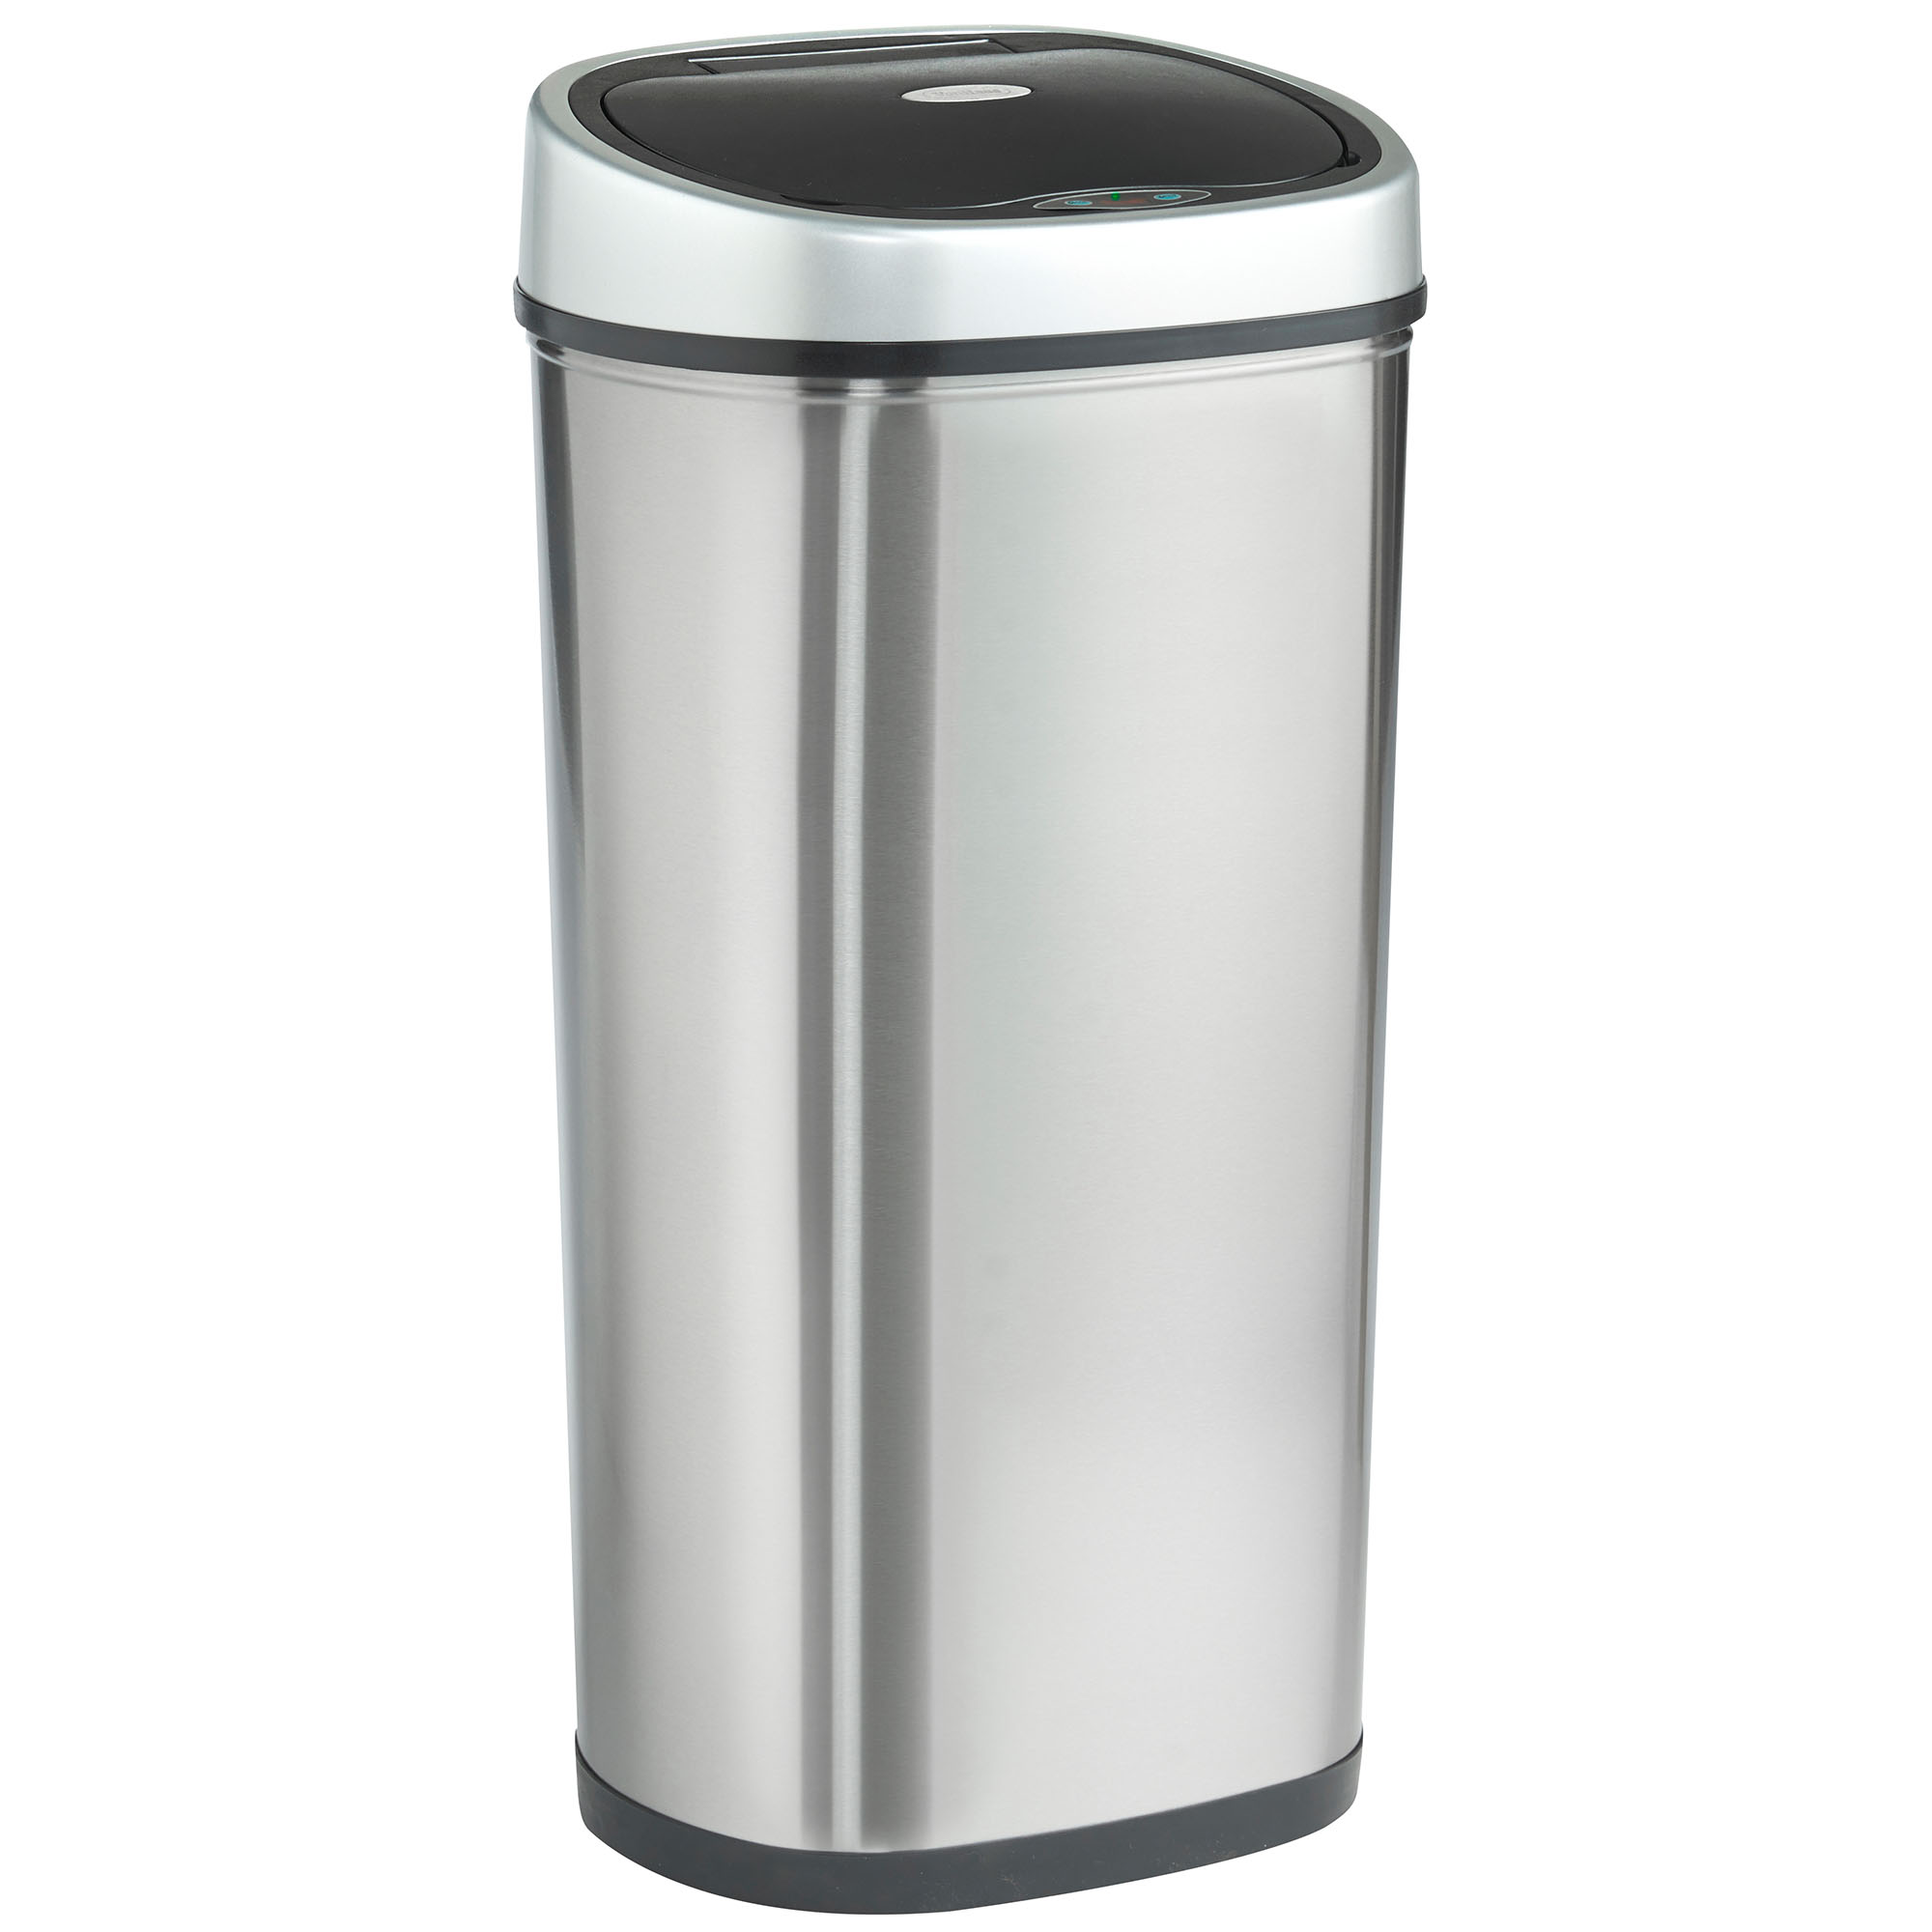 Kitchen Waste Bins: VonHaus 50L Automatic Sensor Touchless Kitchen Waste Dust